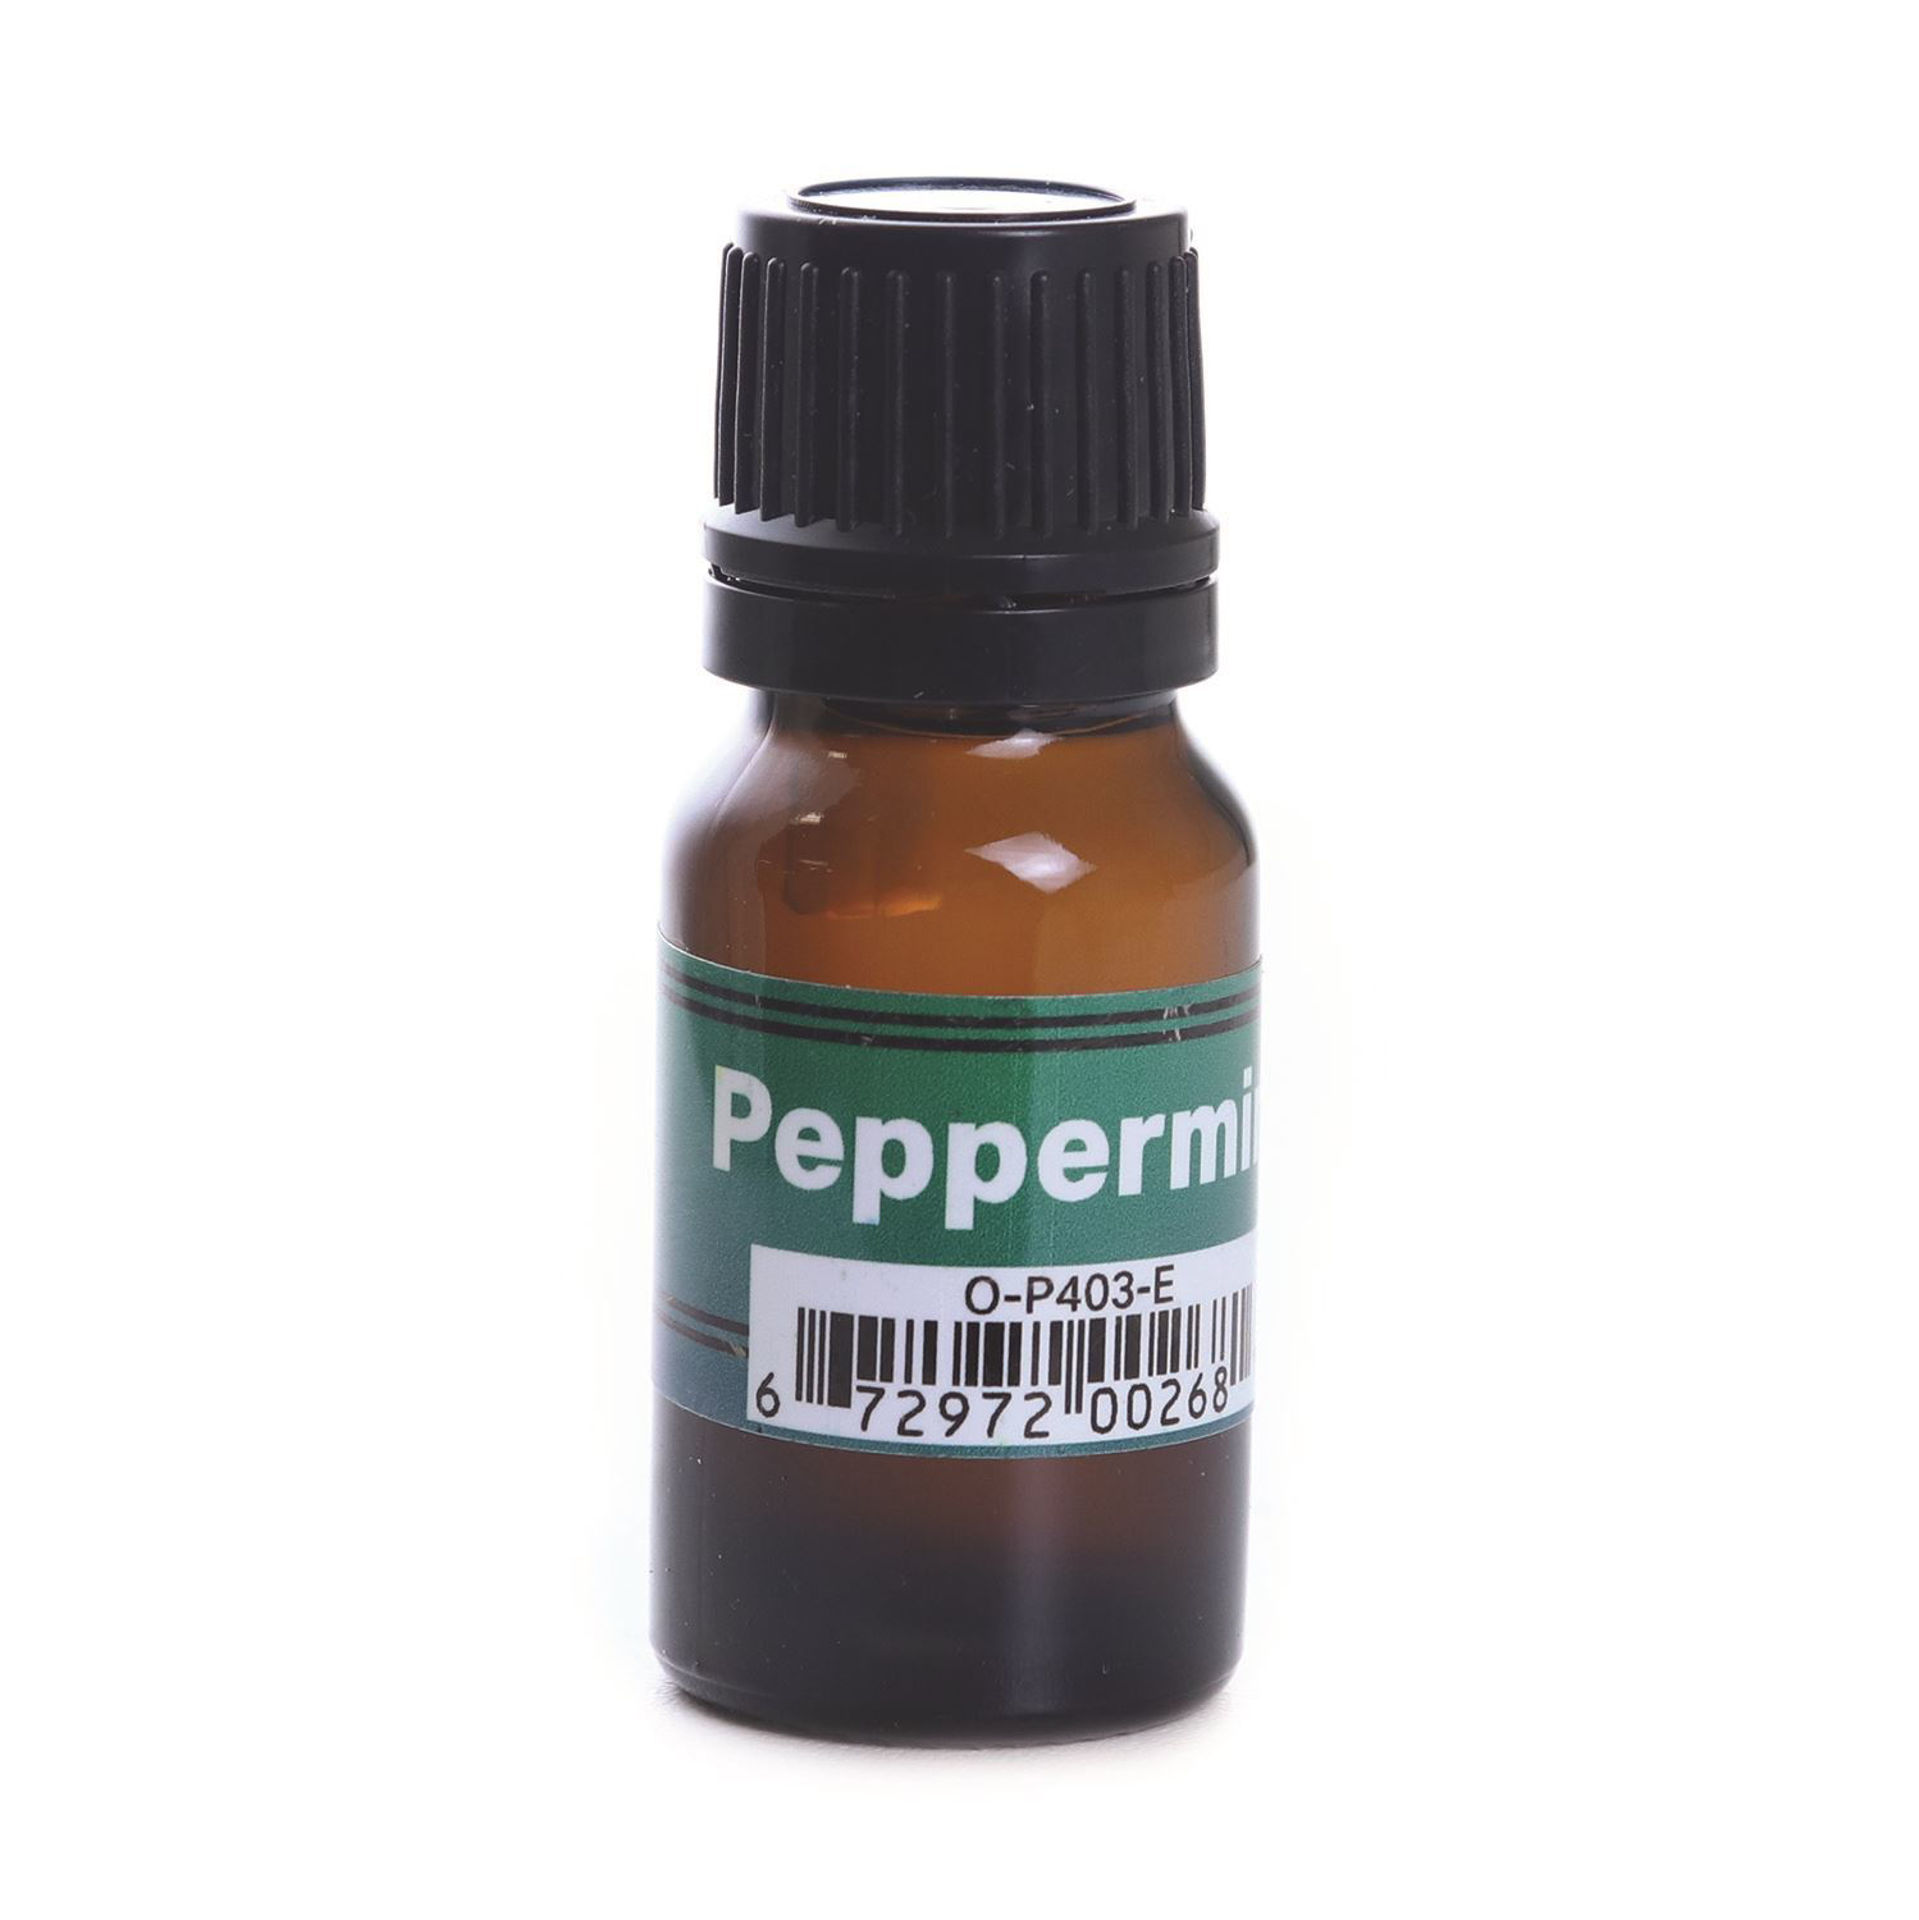 Picture of Peppermint Essential Oil - 1/3 oz.